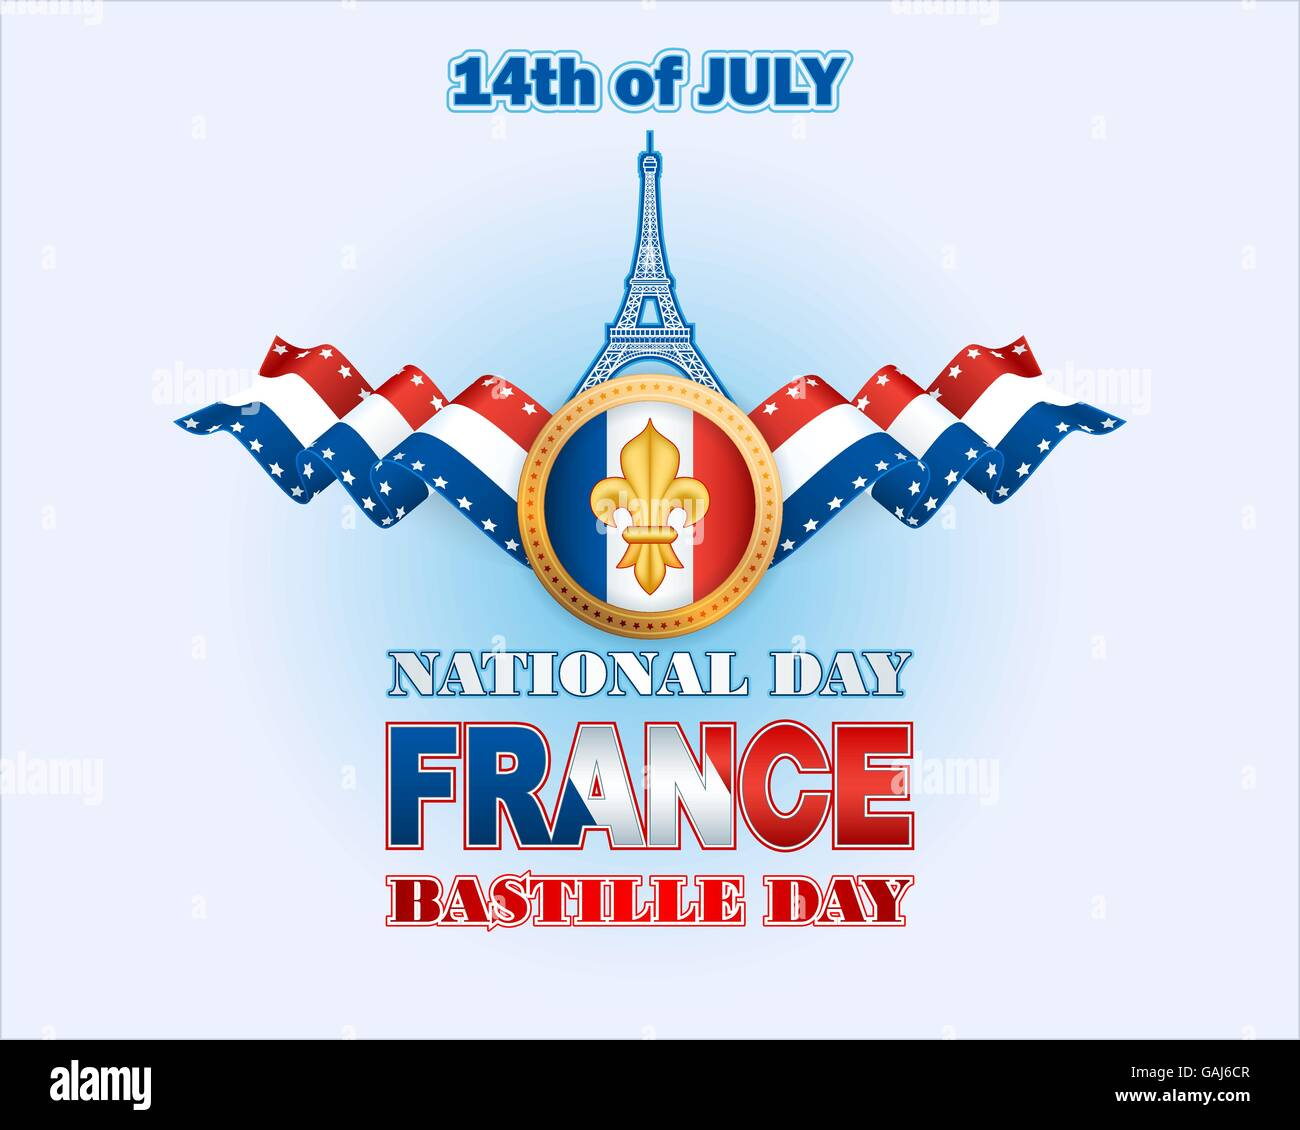 Background with the france flag colors eiffel tower shape and lily background with the france flag colors eiffel tower shape and lily flower symbol for national day of france bastille day izmirmasajfo